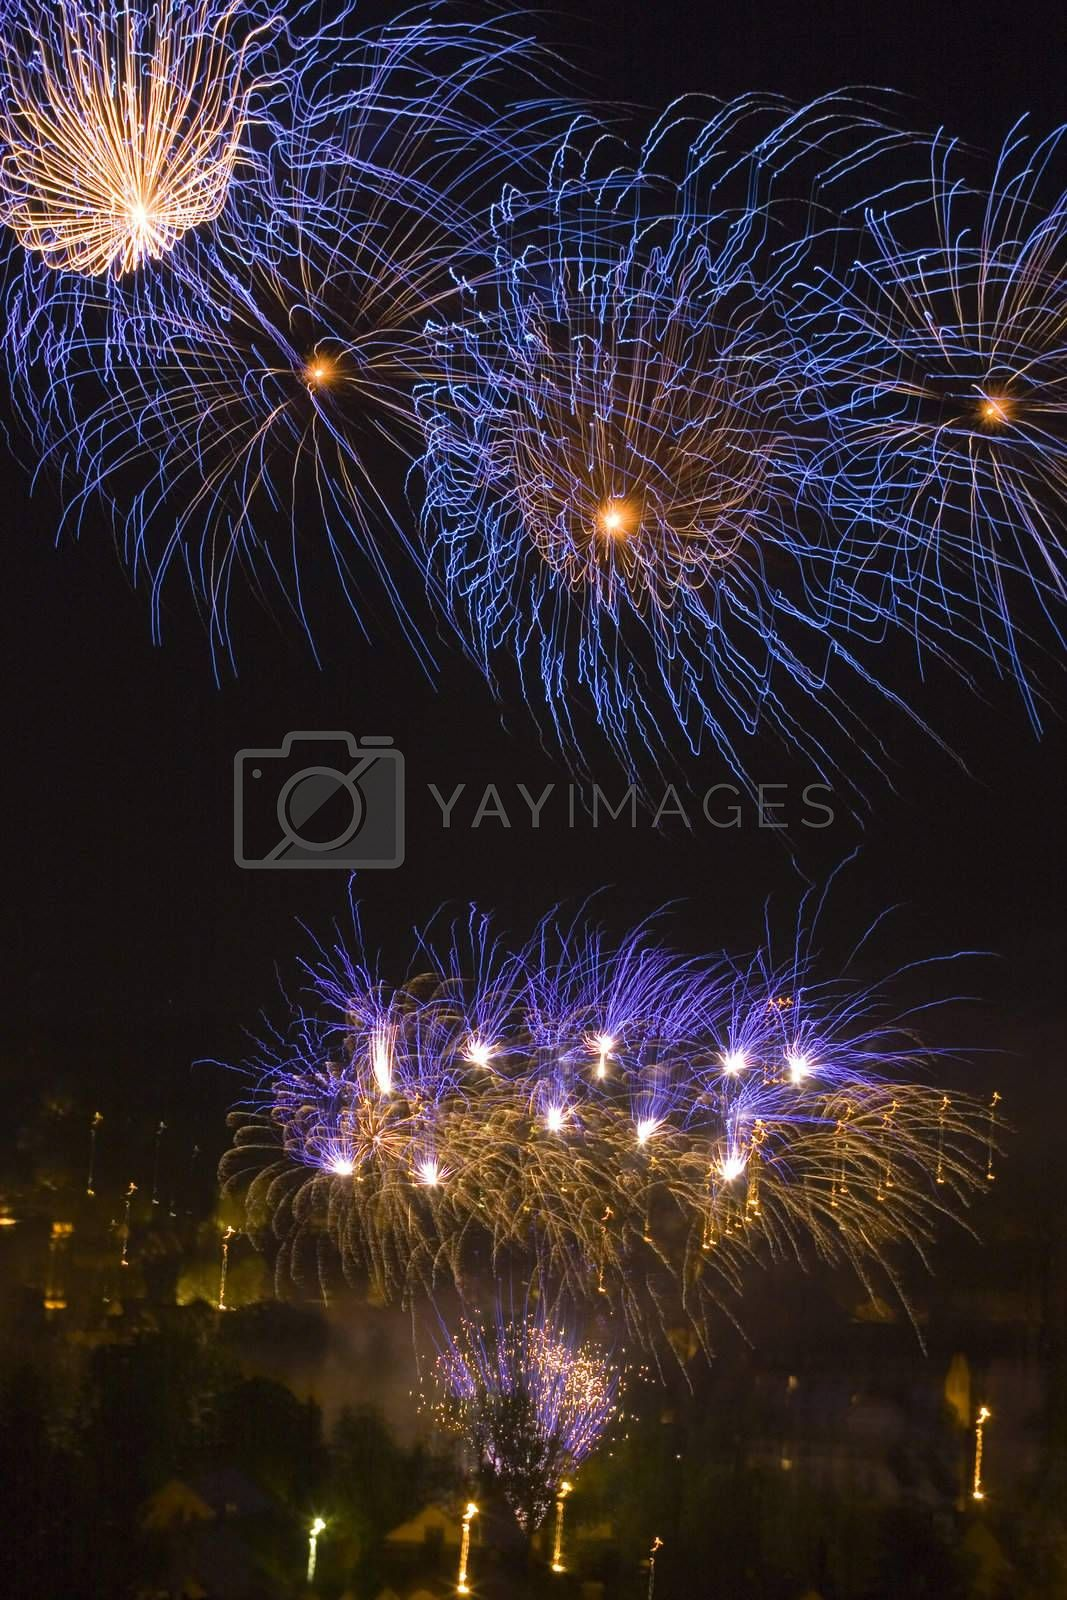 Colorful fireworks over a town by night